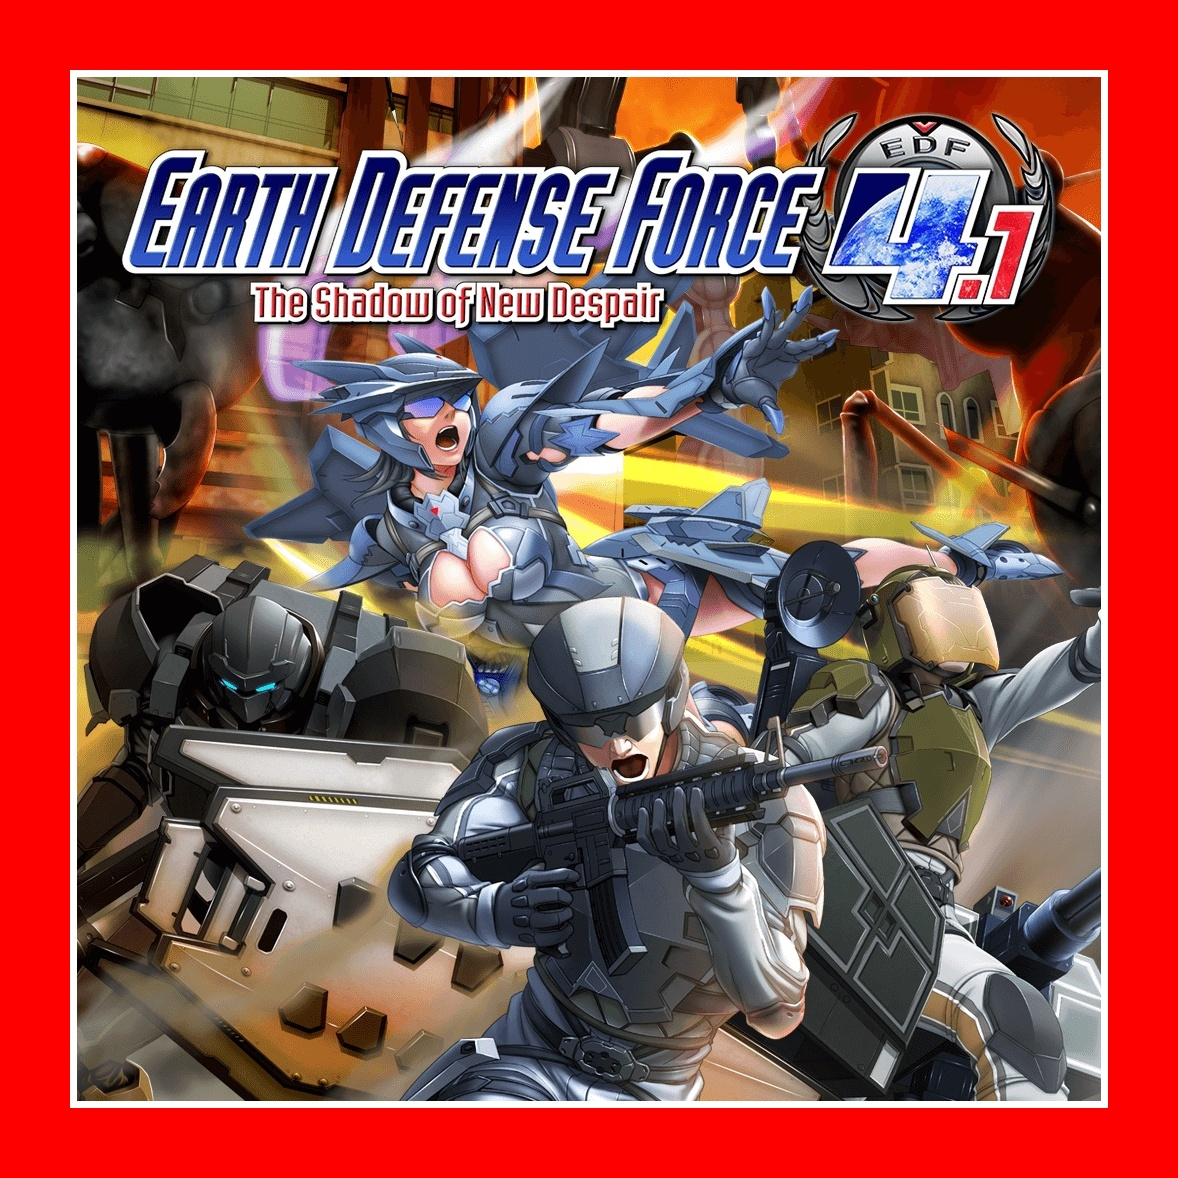 Buy Now Earth Defense Force 4 1 The Shadow Of New Despair